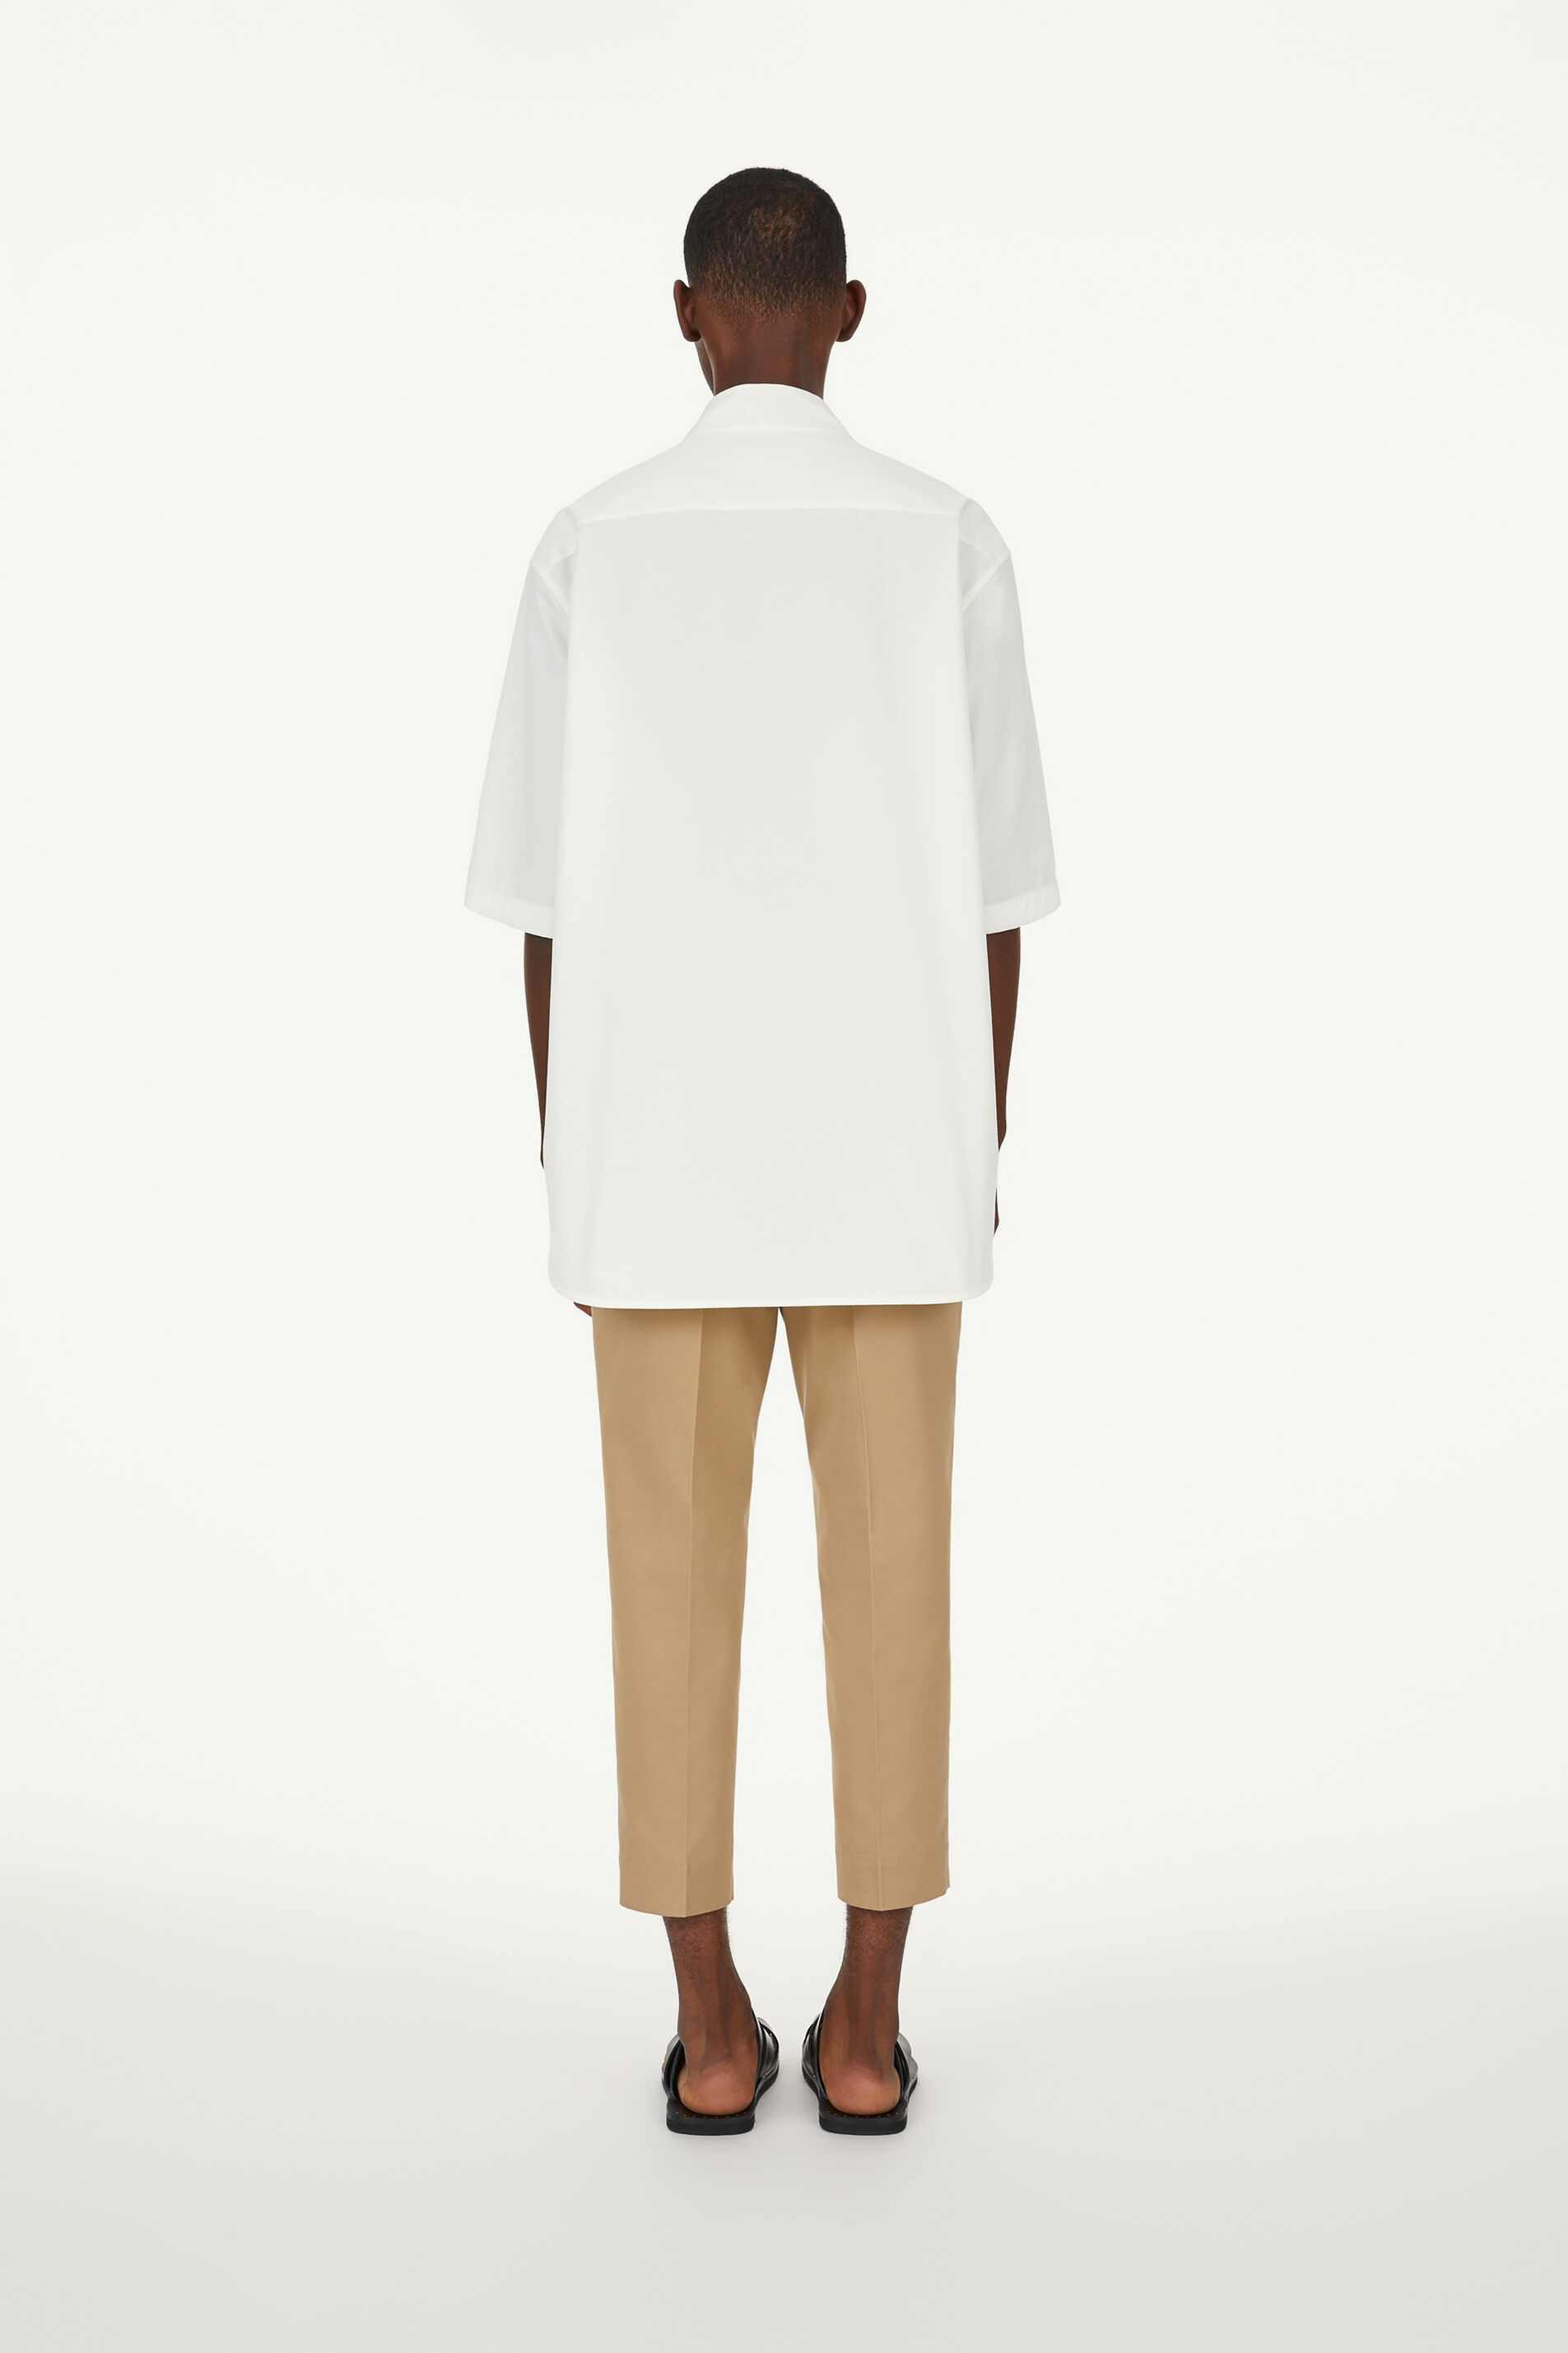 Trousers, pastel brown, large